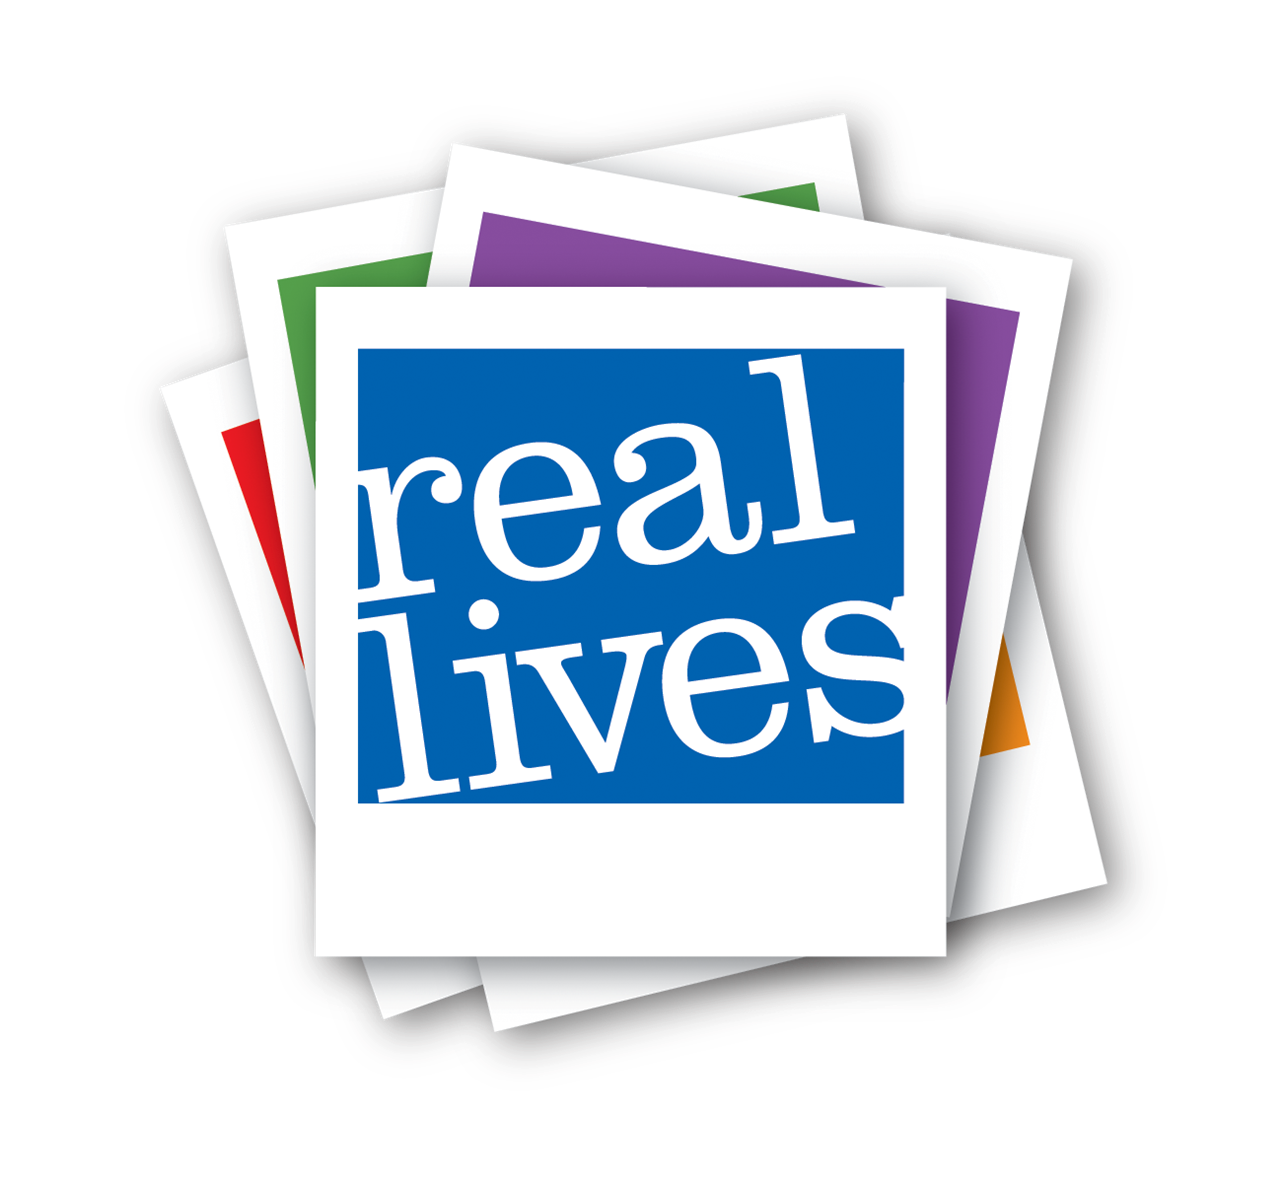 During our Real Lives events we interview guest speakers and find out something of their life stories, and how having a relationship with God has changed their lives.